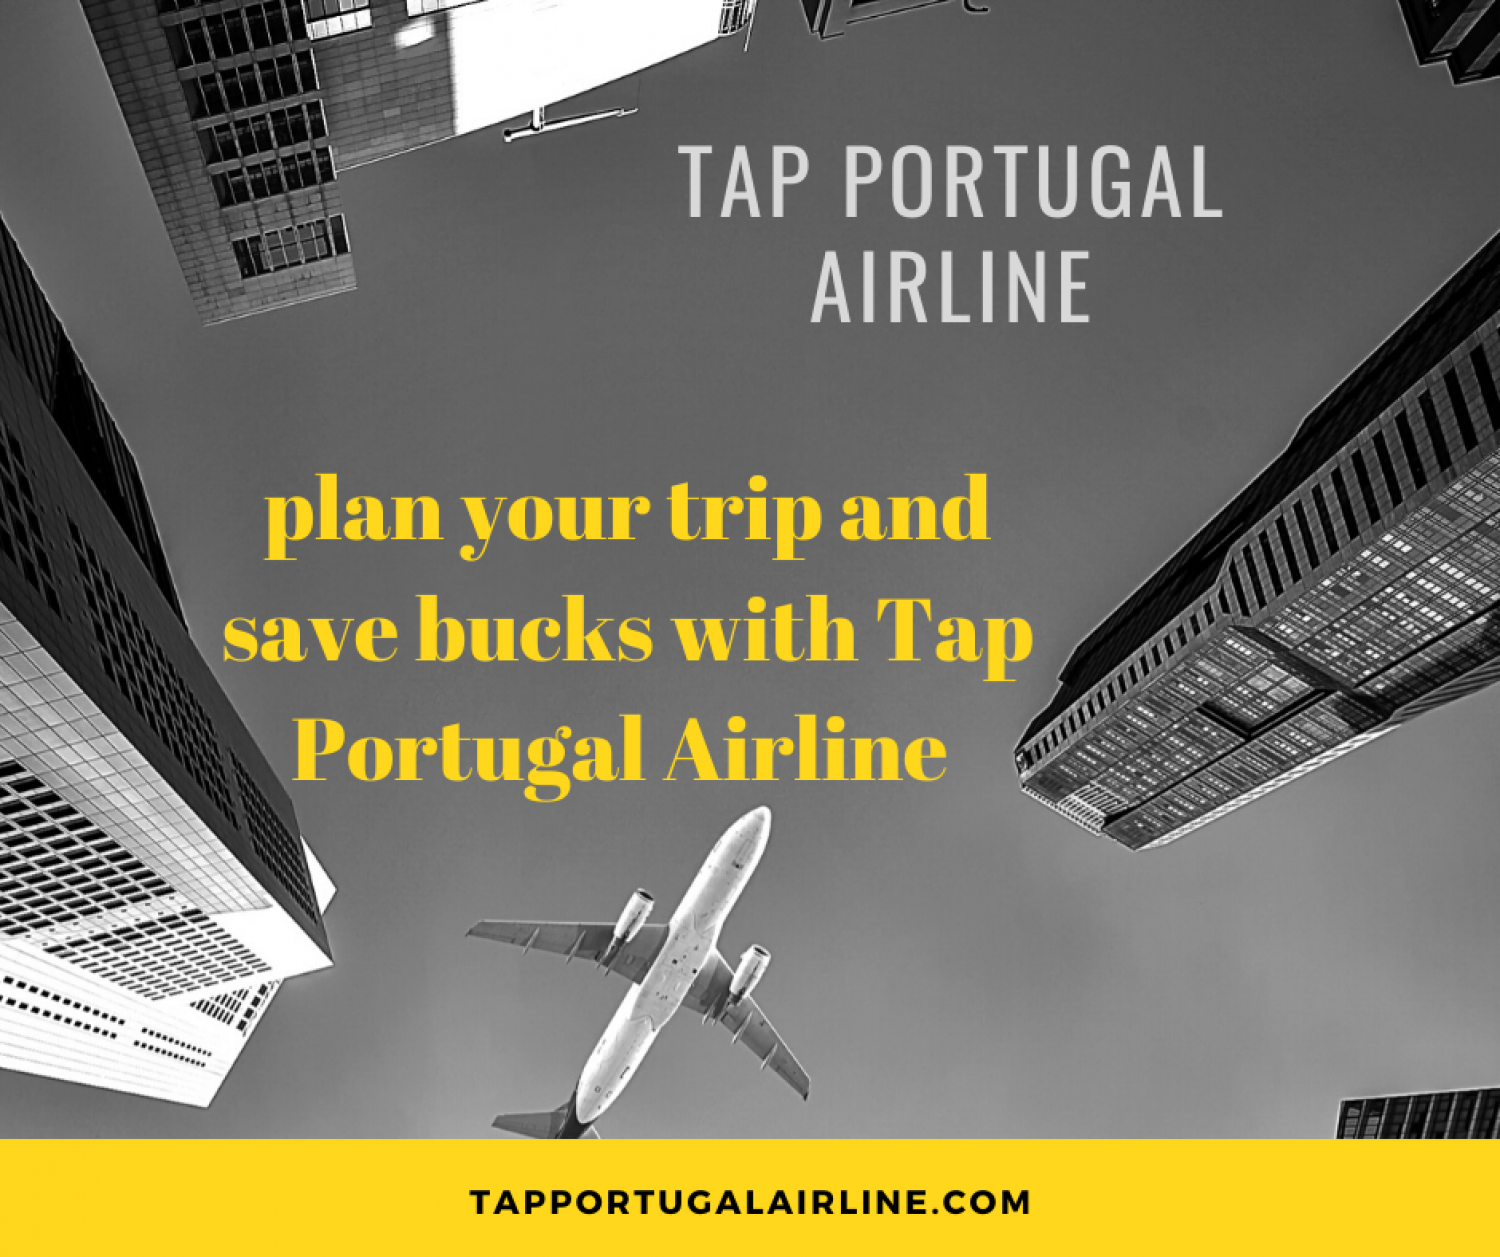 plan your trip and save bucks with Tap Portugal Airline  Infographic